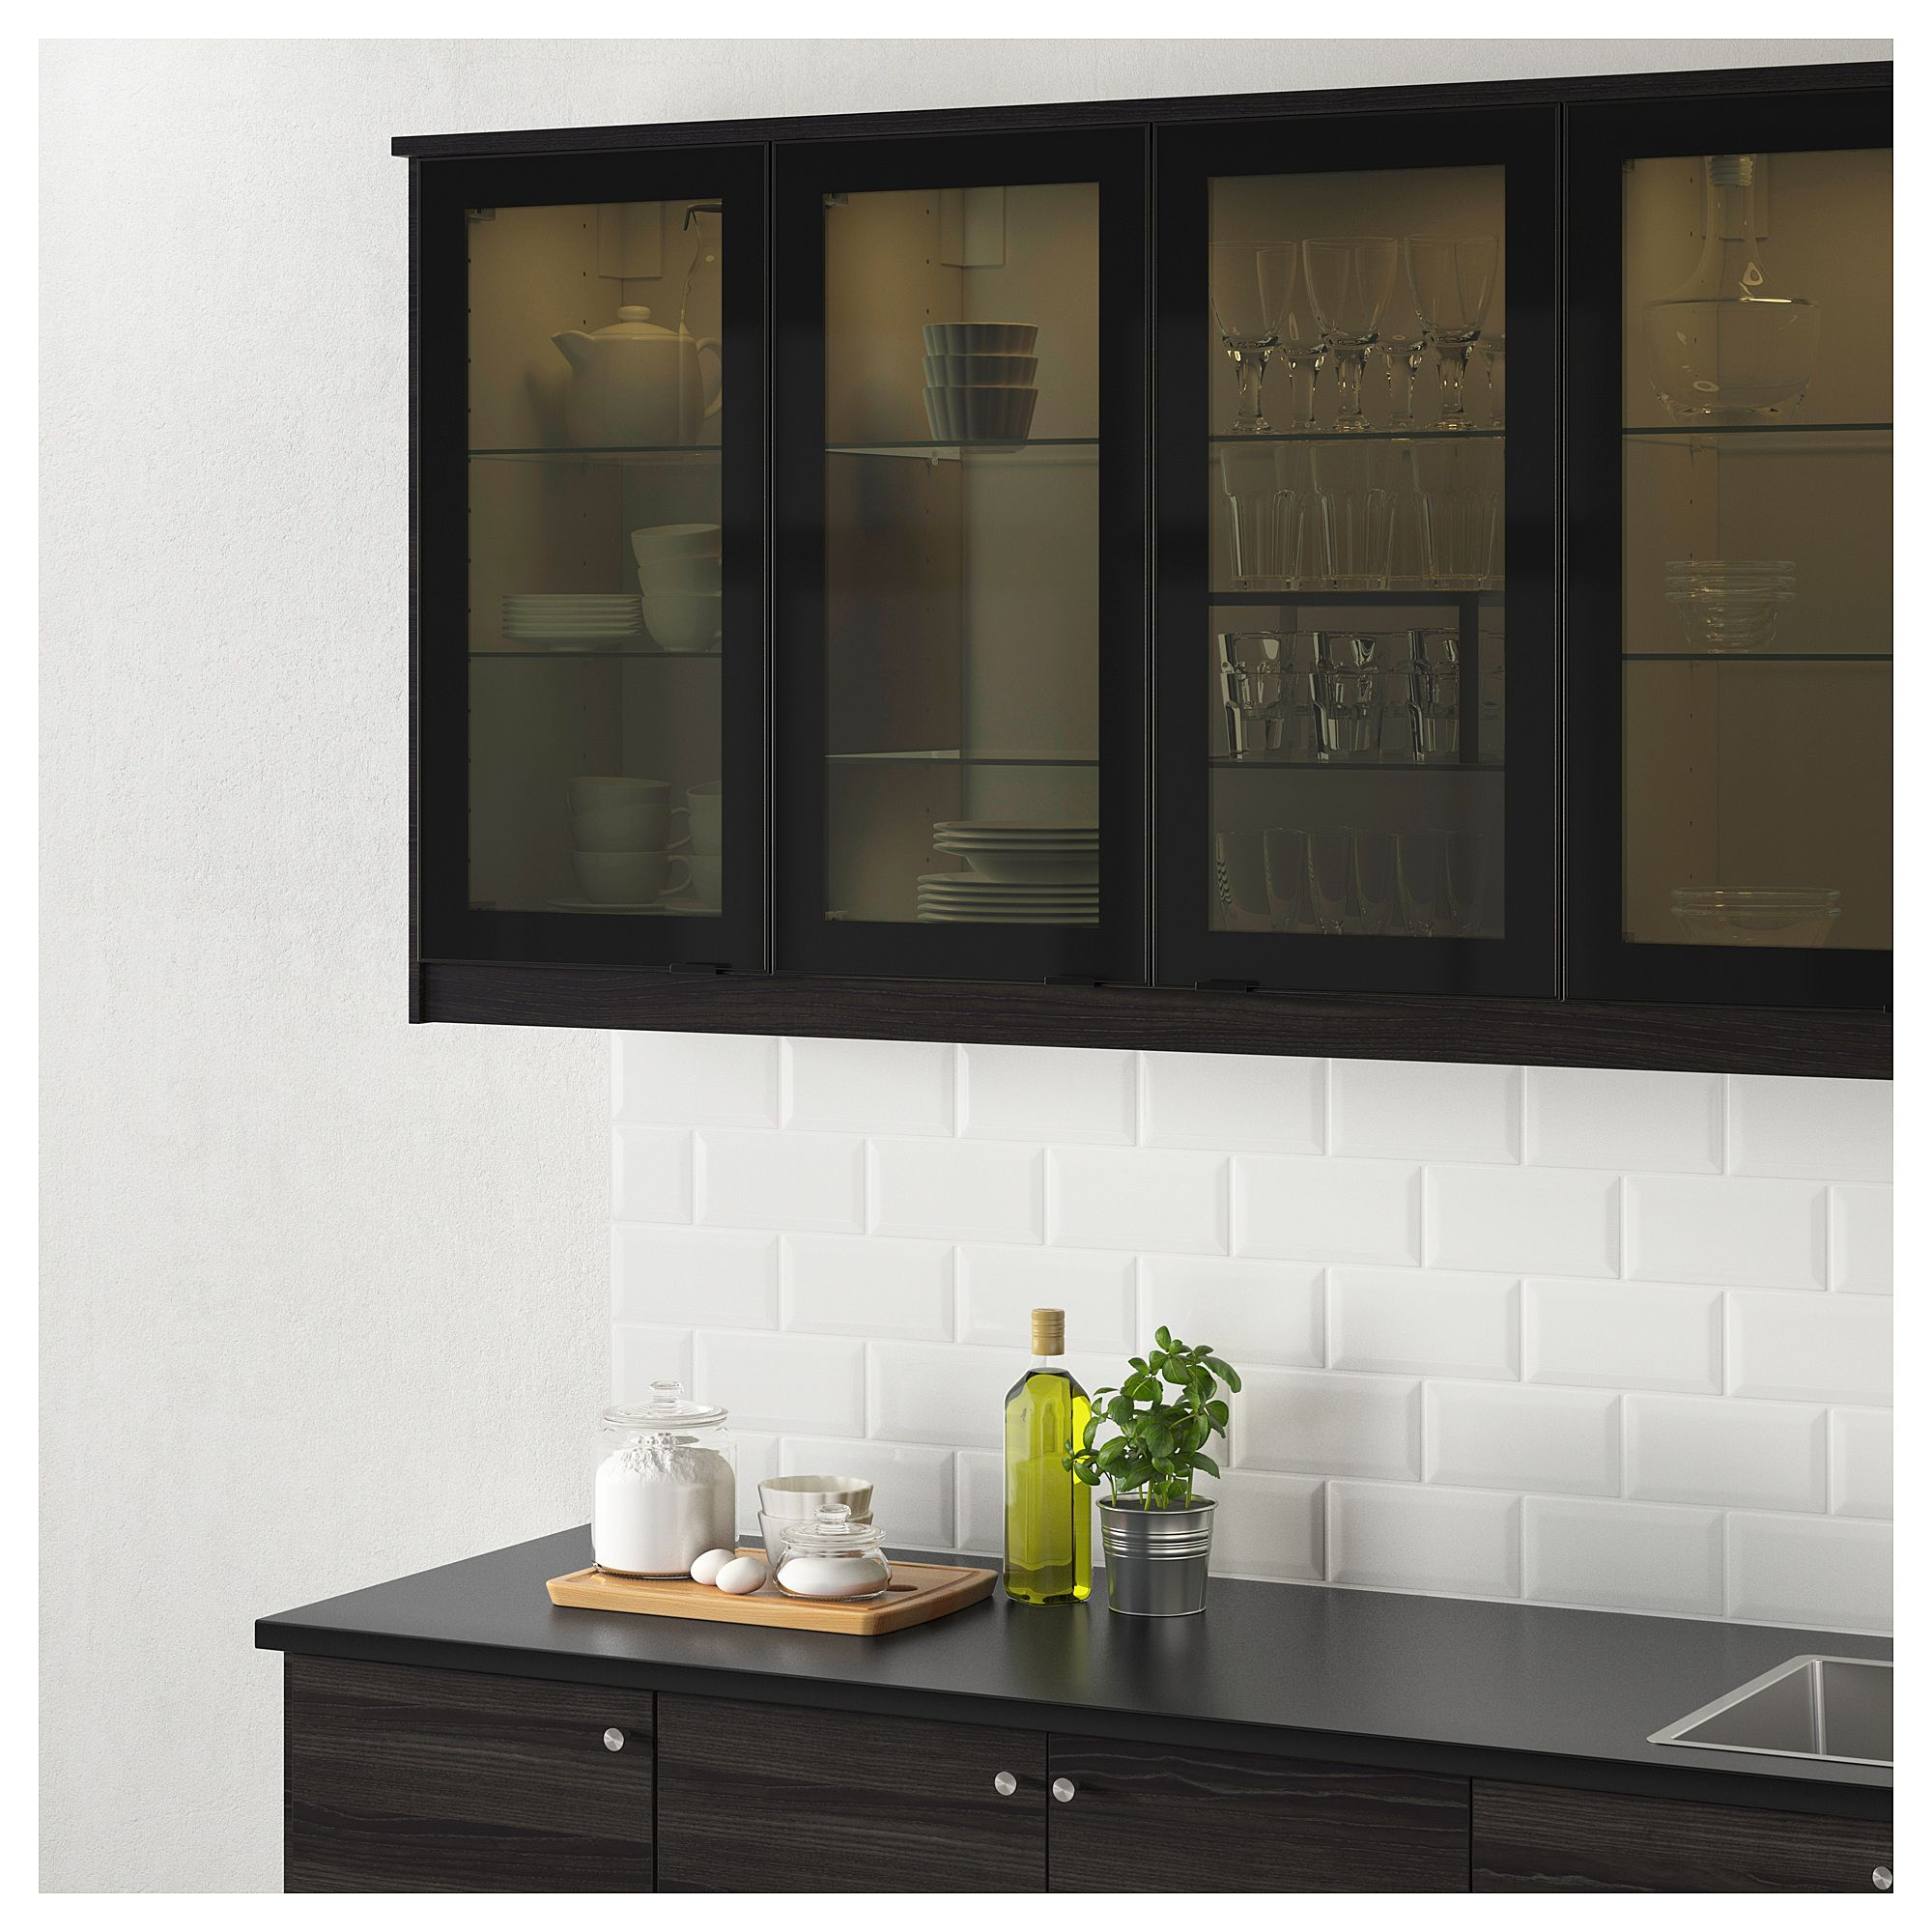 Jutis Glass Door Smoked Glass Black Ikea Glass Kitchen Cabinets Smoked Glass Glass Door